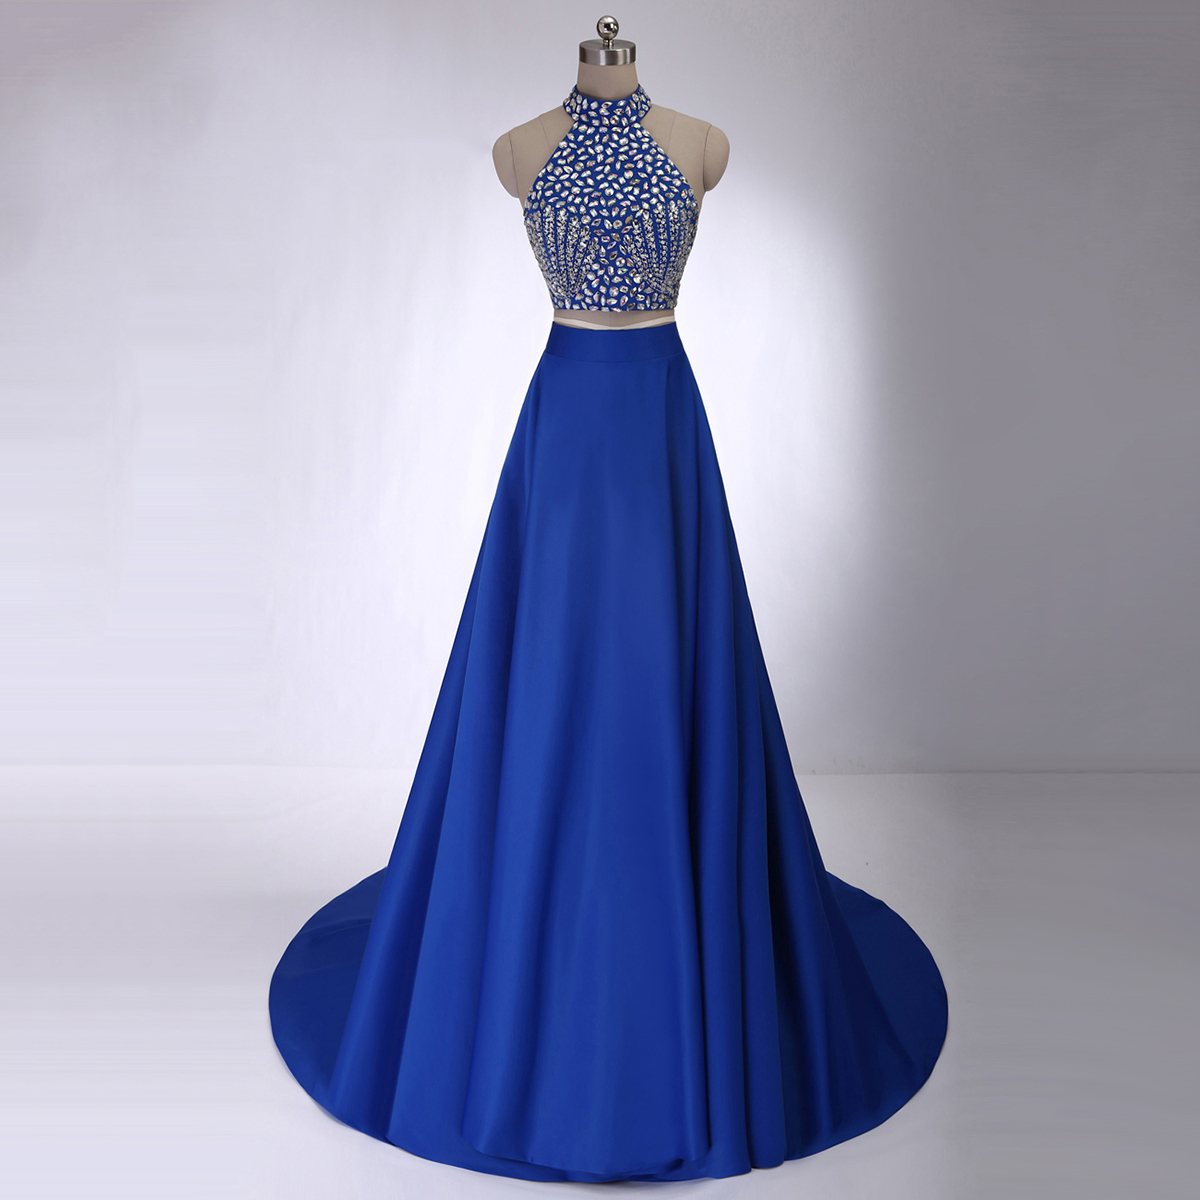 Crystal Beaded High Neck Prom Dresses  Royal Blue Crop Top Prom     Crystal beaded high neck prom dresses royal blue crop top prom dress with allover  beaded bodice